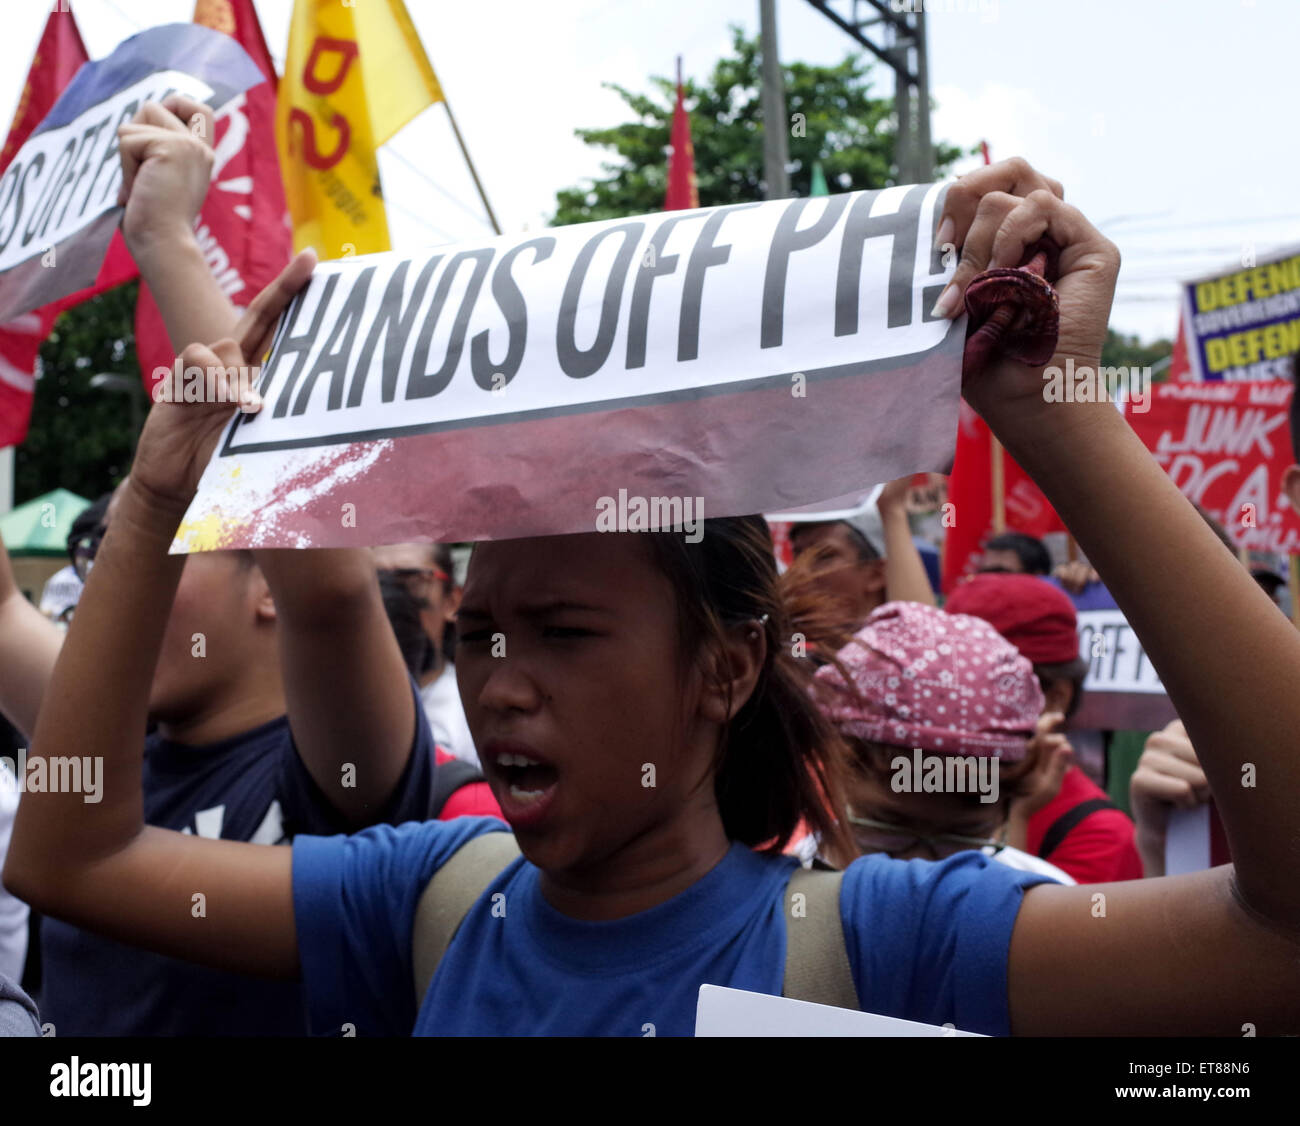 Manila, Philippines. 12th June, 2015. A protester shouts a slogan during a protest action outside the US Embassy, - Stock Image